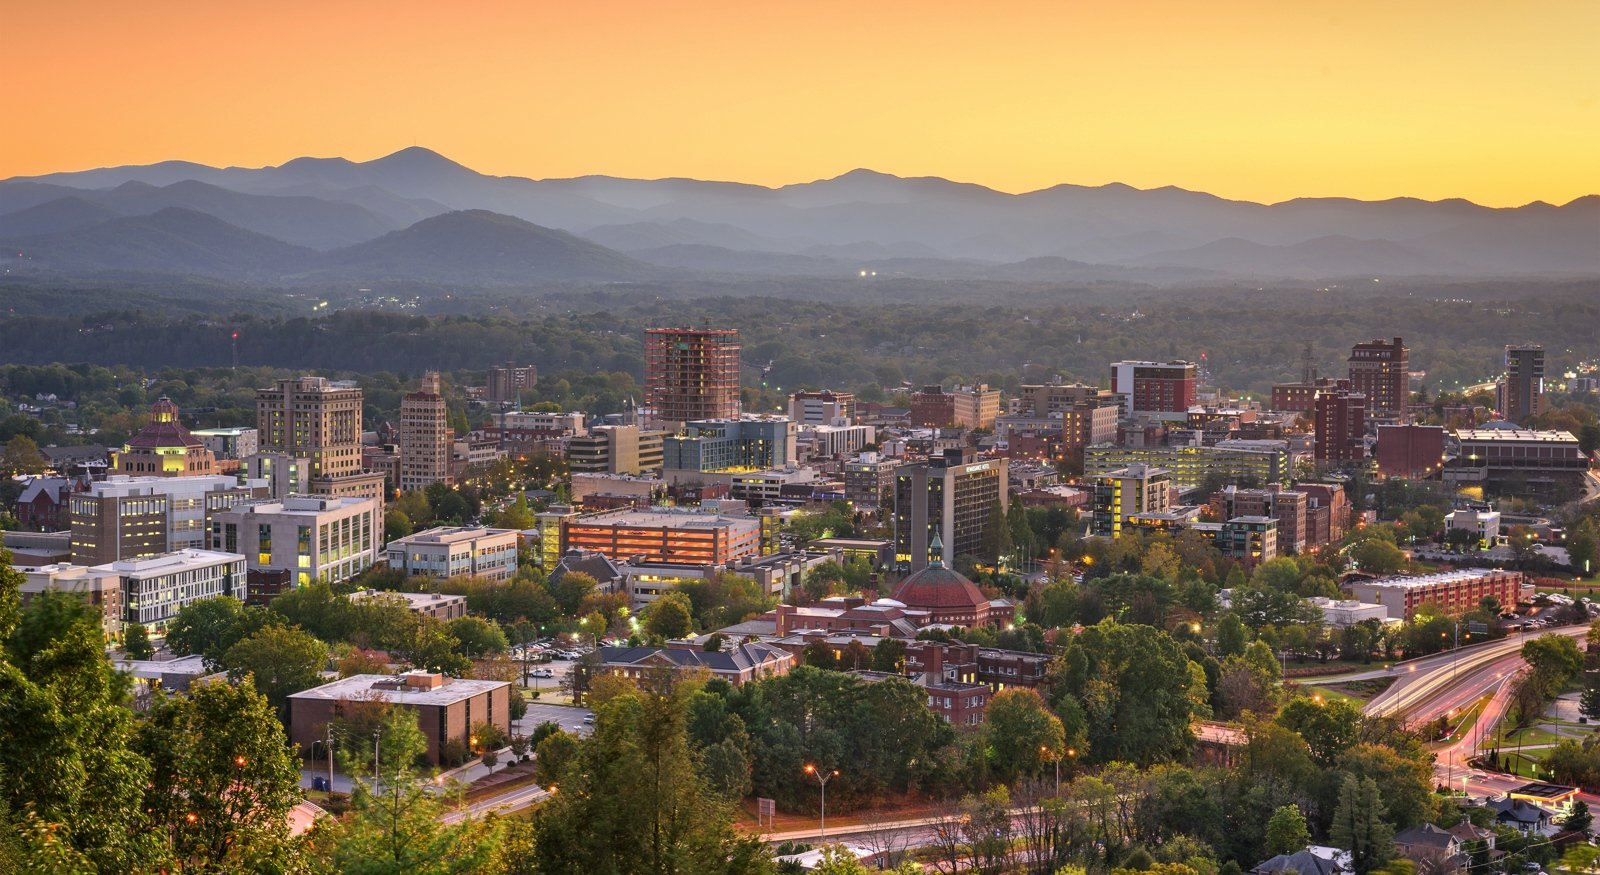 21 Things To Do in Asheville NC: An Insider's Guide - Goats On The Road